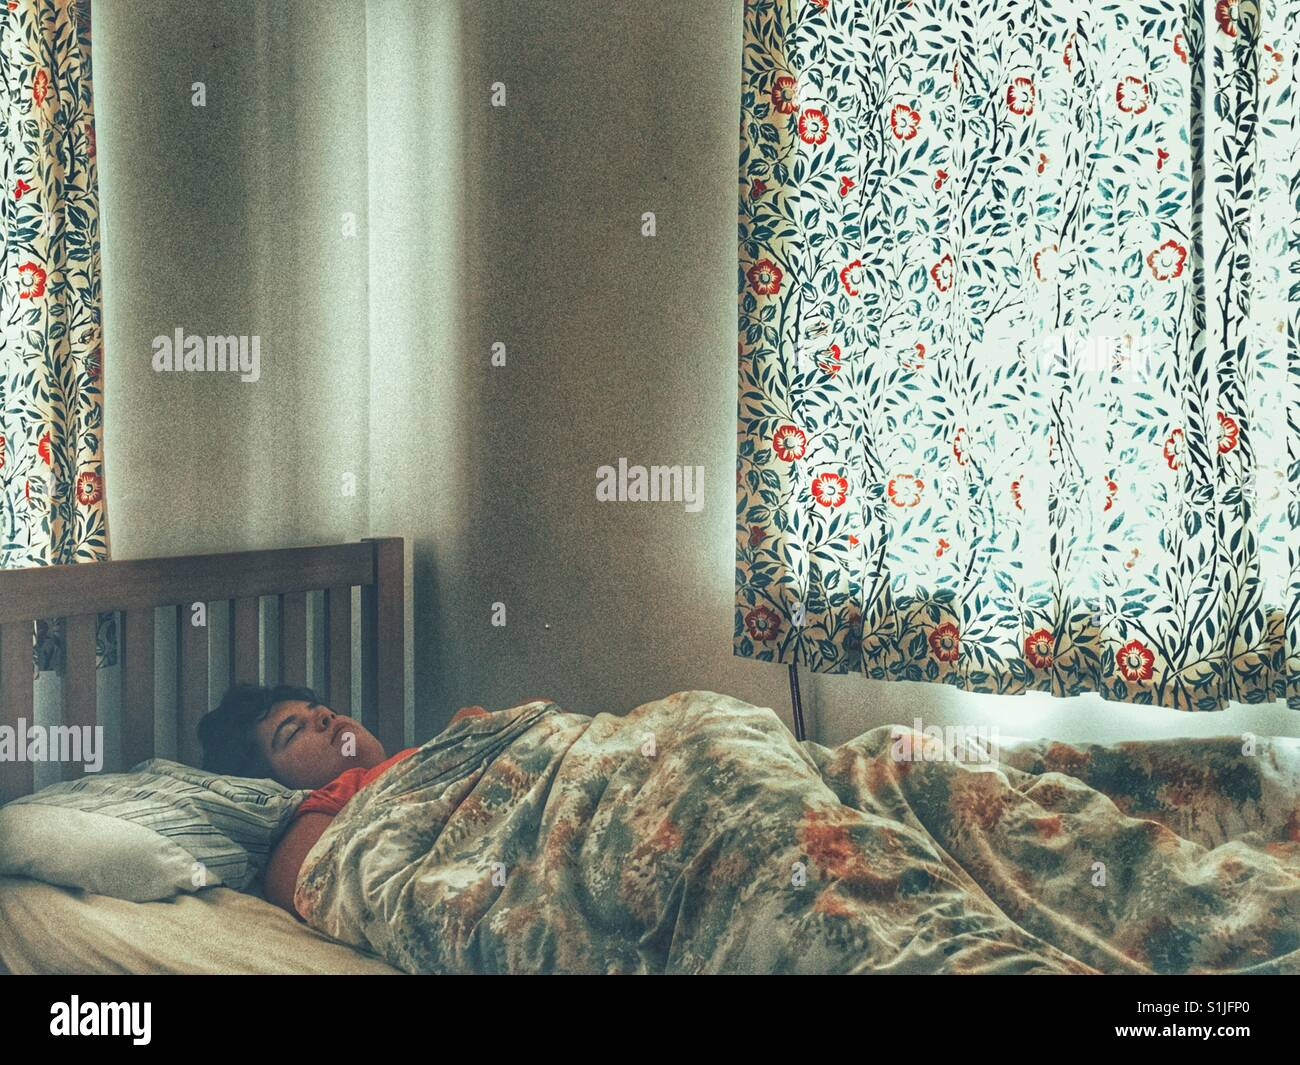 Young Woman Asleep In Bed With The Curtains Drawn, Daytime